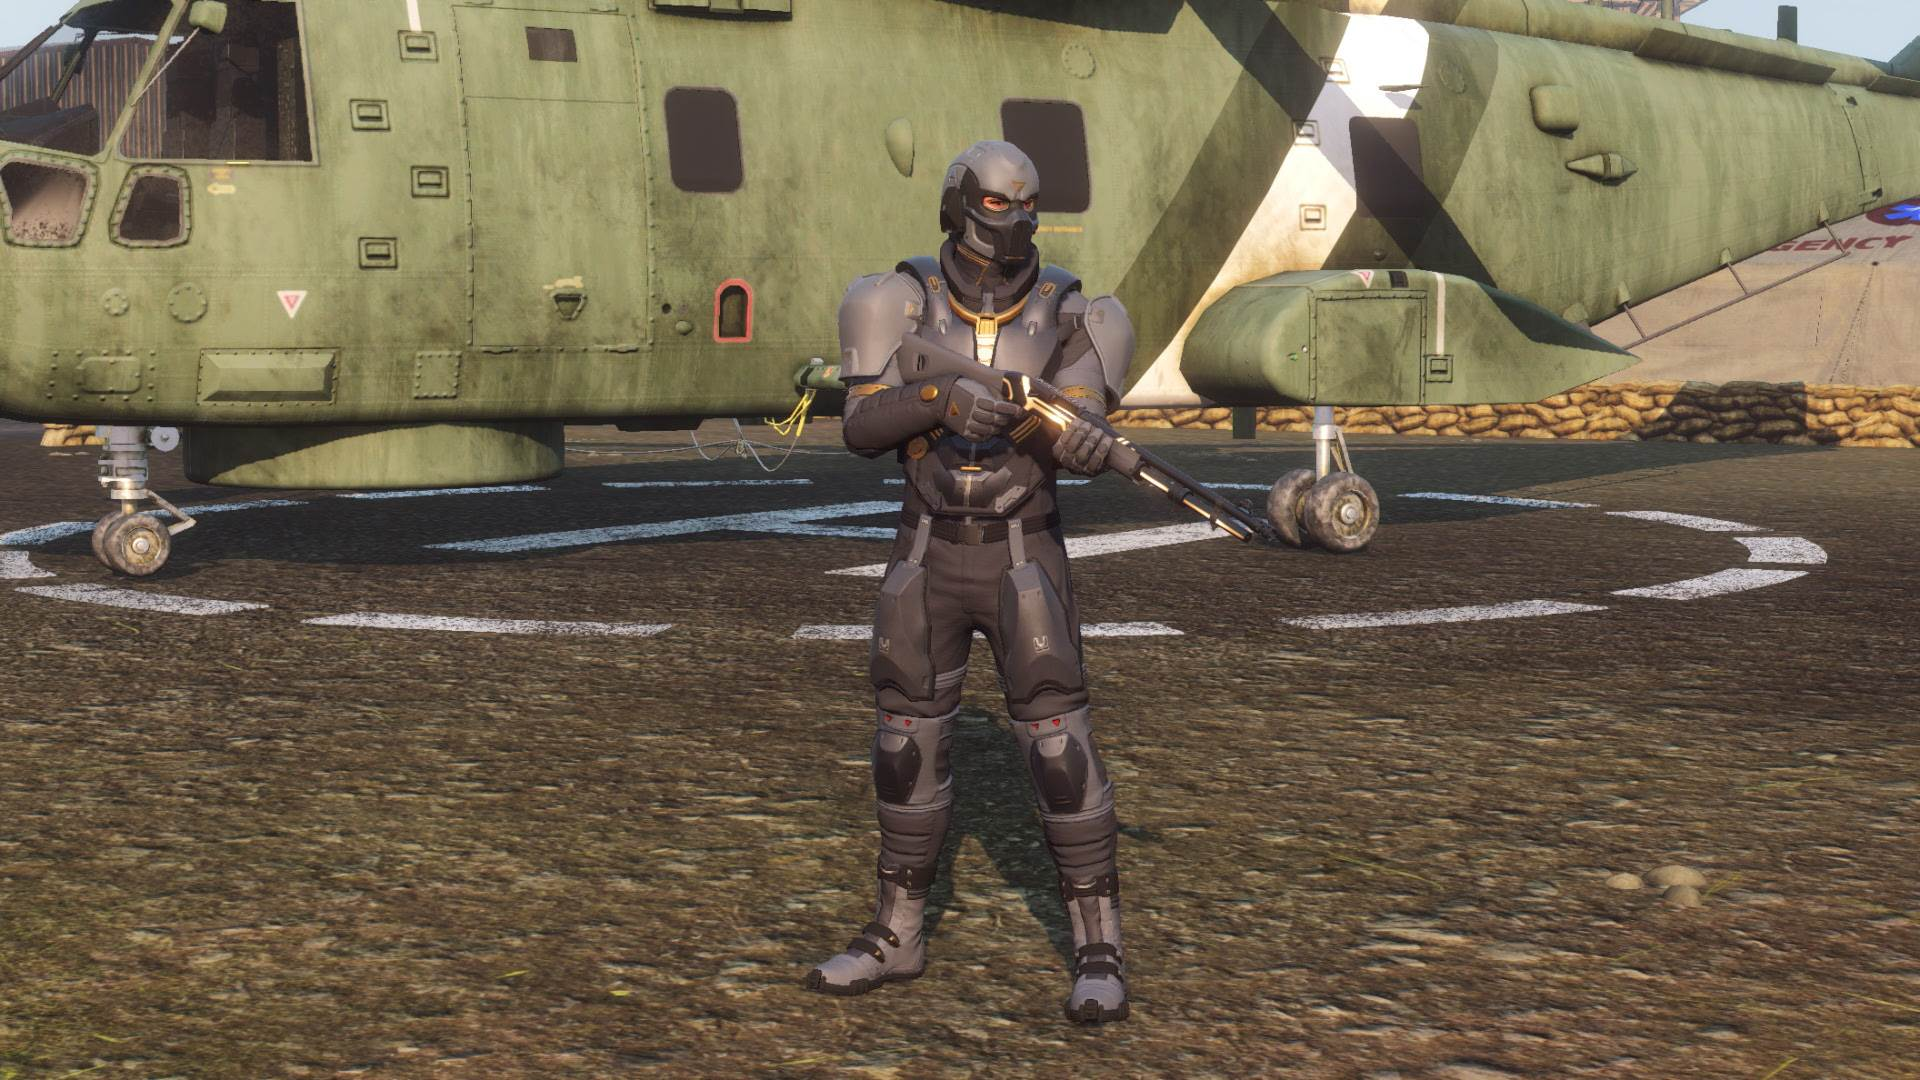 H1Z1: Battle Royale has gone through many changes for the